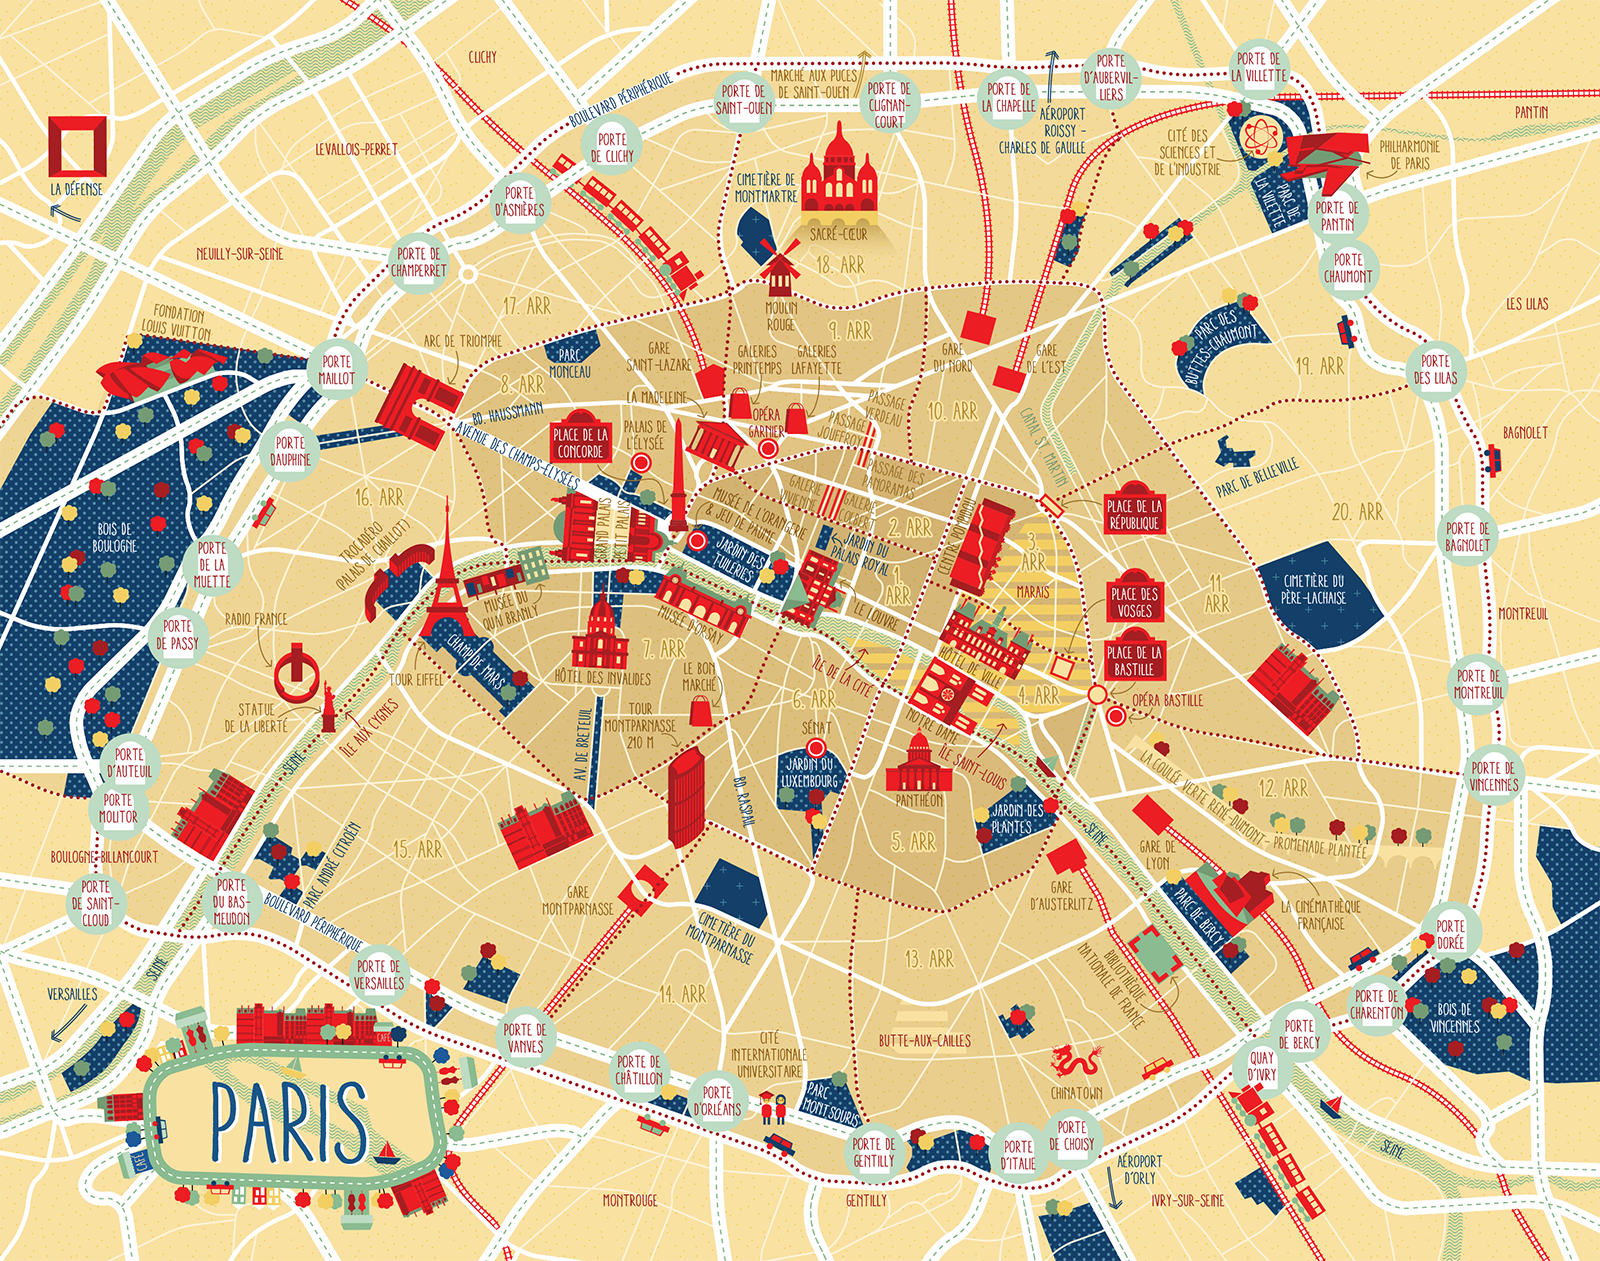 Image by Iew Gnahz on map Paris map, Illustrated map